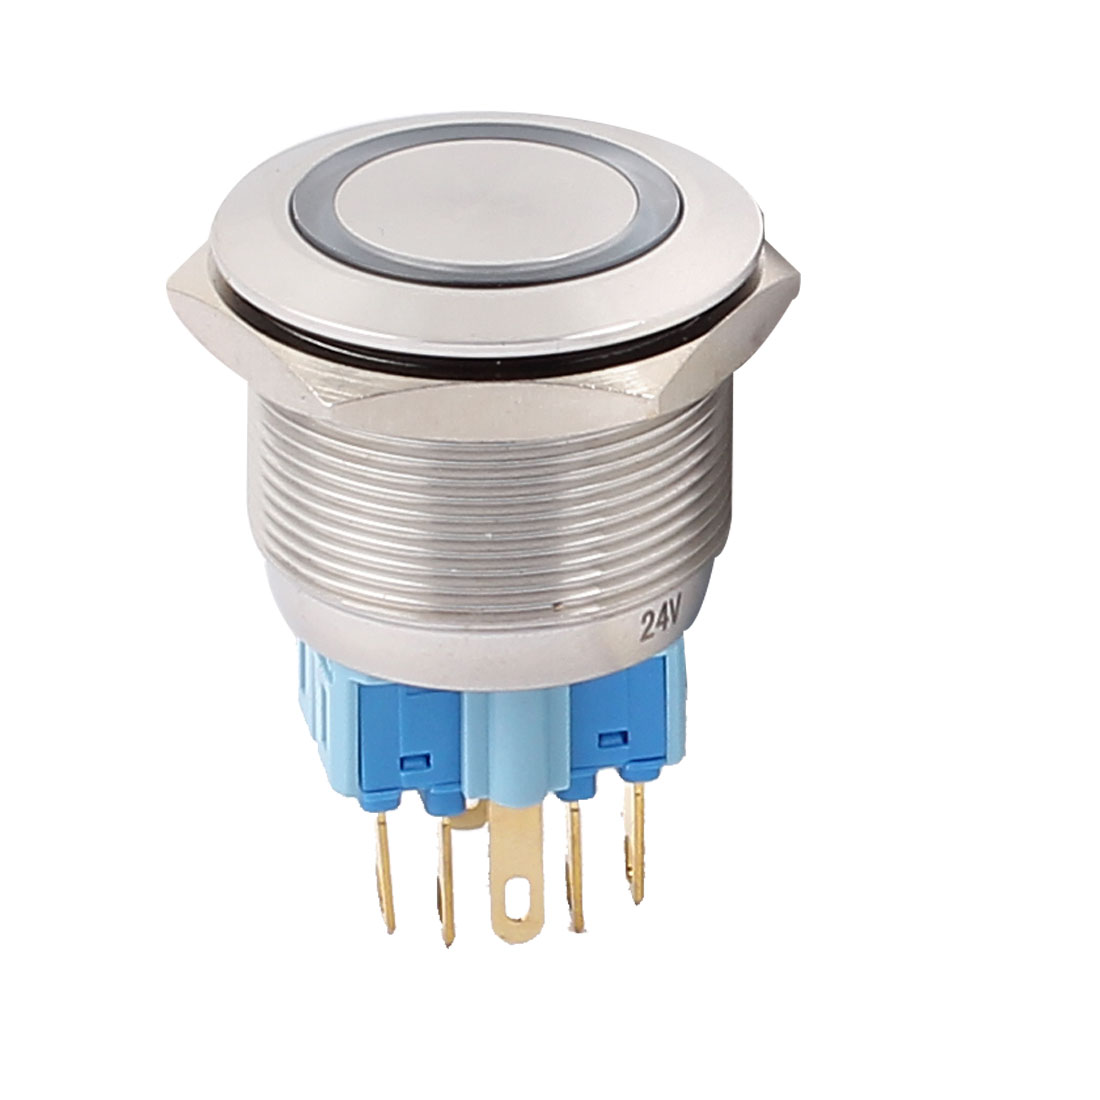 24V 25mm Dia Thread Blue LED Angle Eyes Momentary Metal Pushbutton Switch